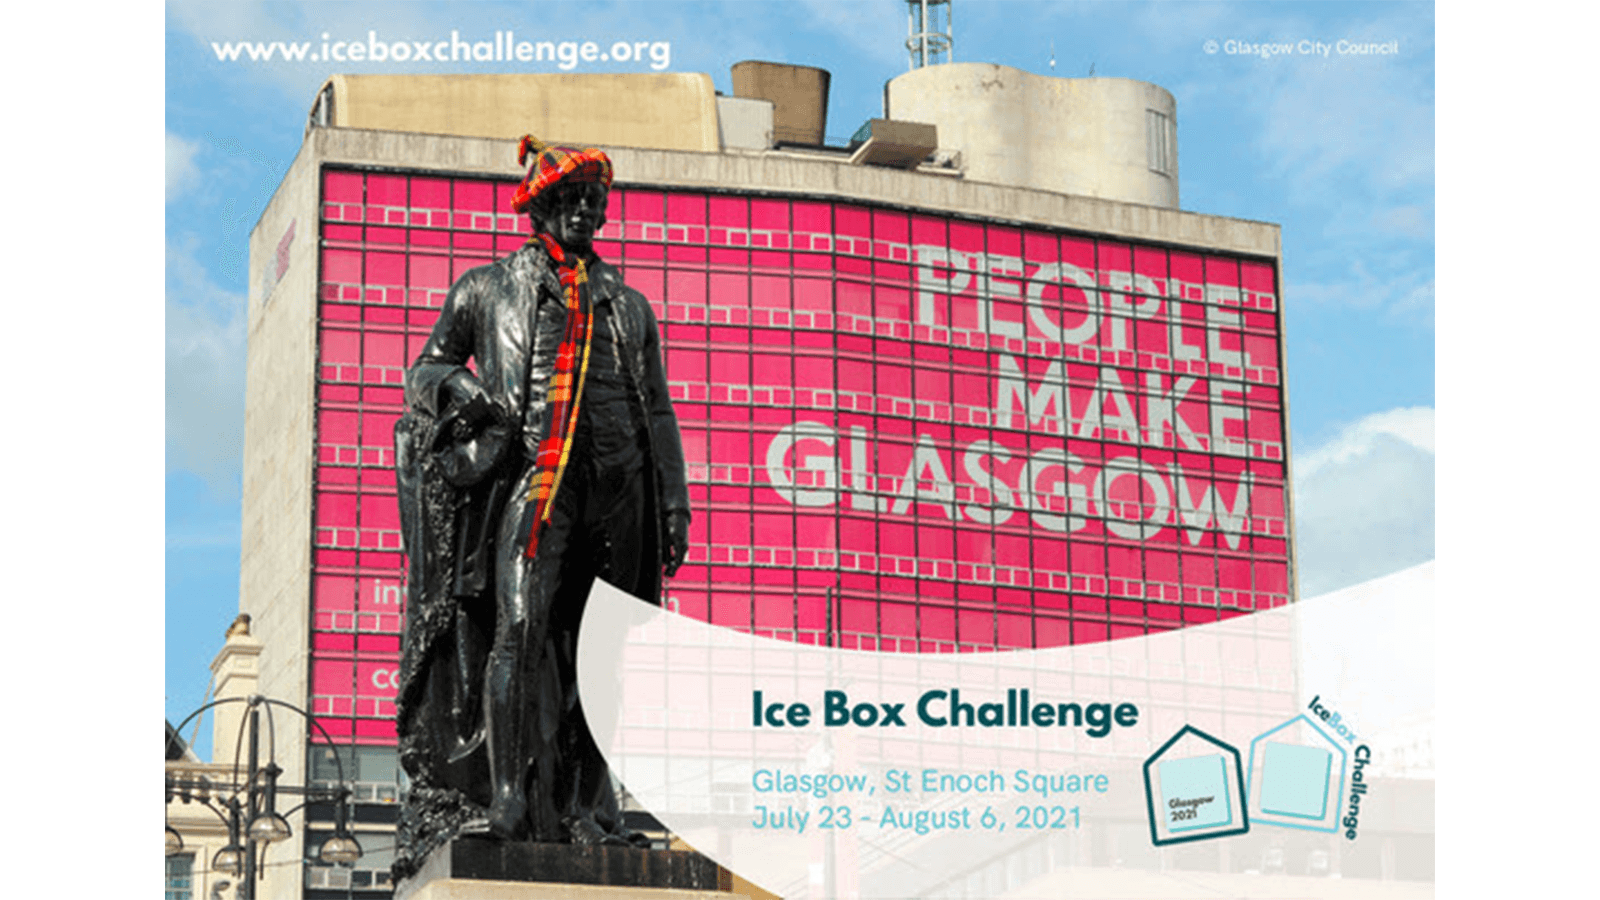 Ice Box Challenge Glasgow: St Enoch Square, July 23 - August 6, 2021